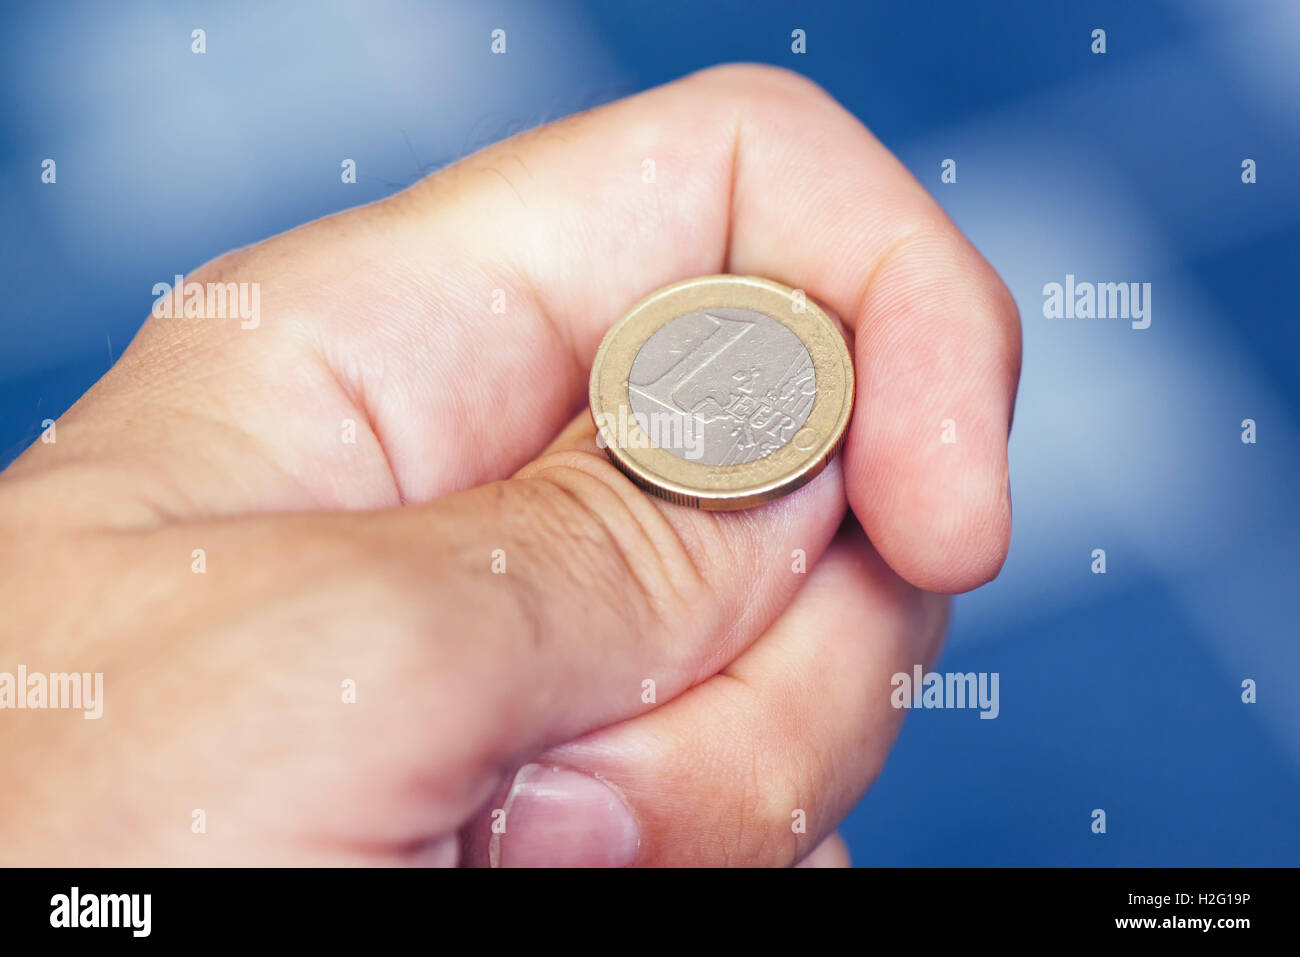 Businessman hand tossing coin to flip on heads or tails, concept of chance, opportunity and decision making - Stock Image